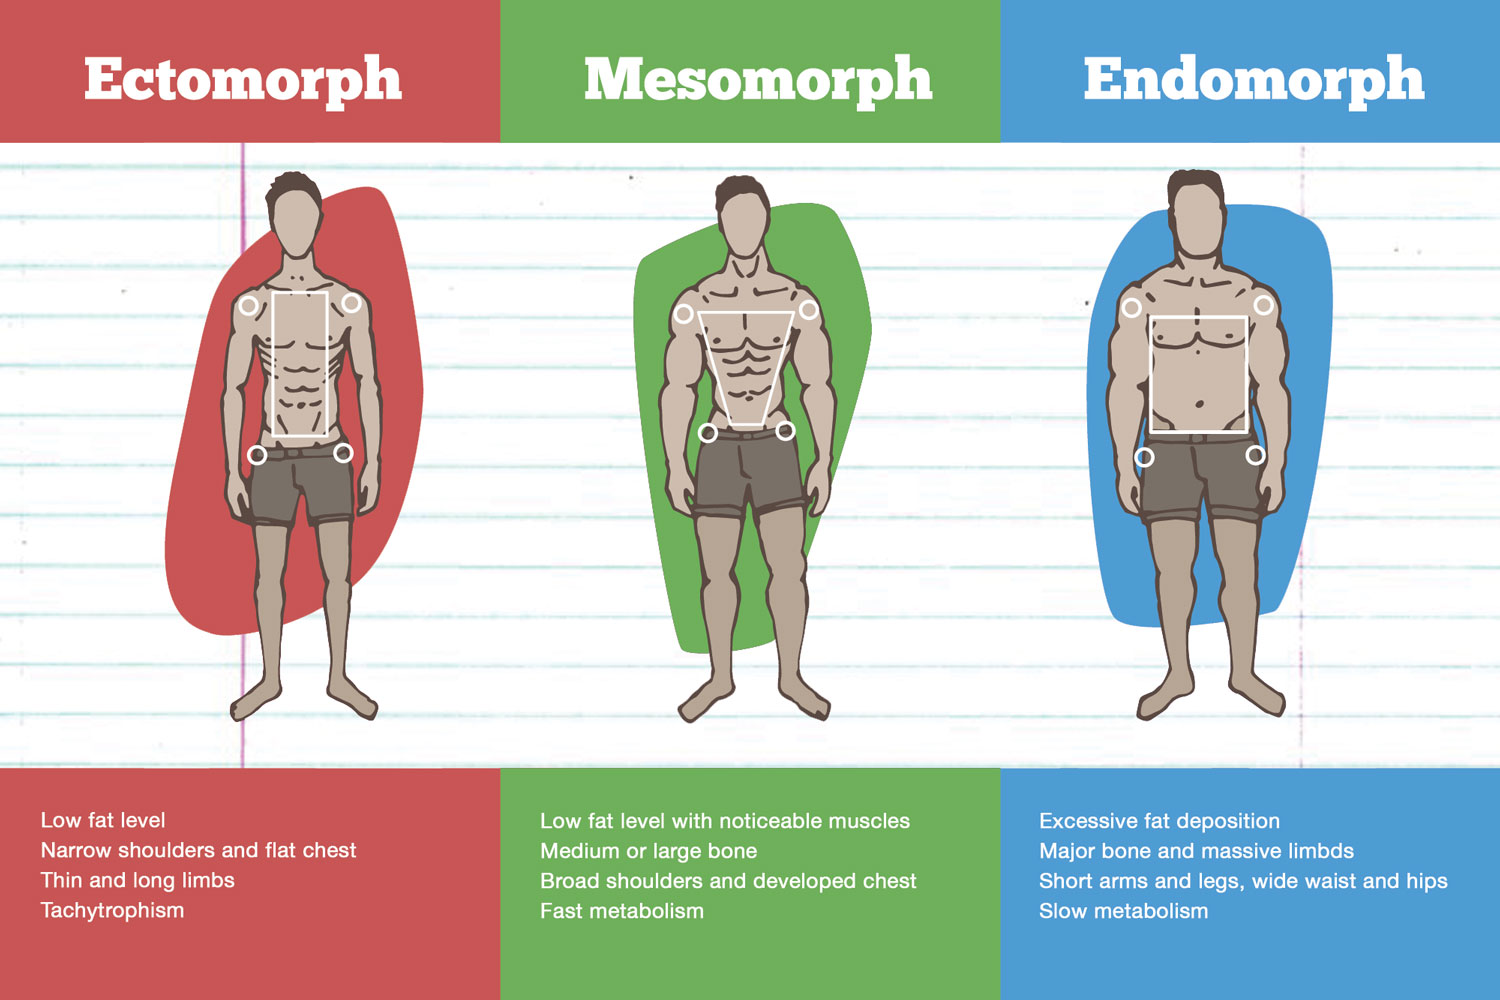 How your body responds to resistance training is largely predicated by your genes and body type.